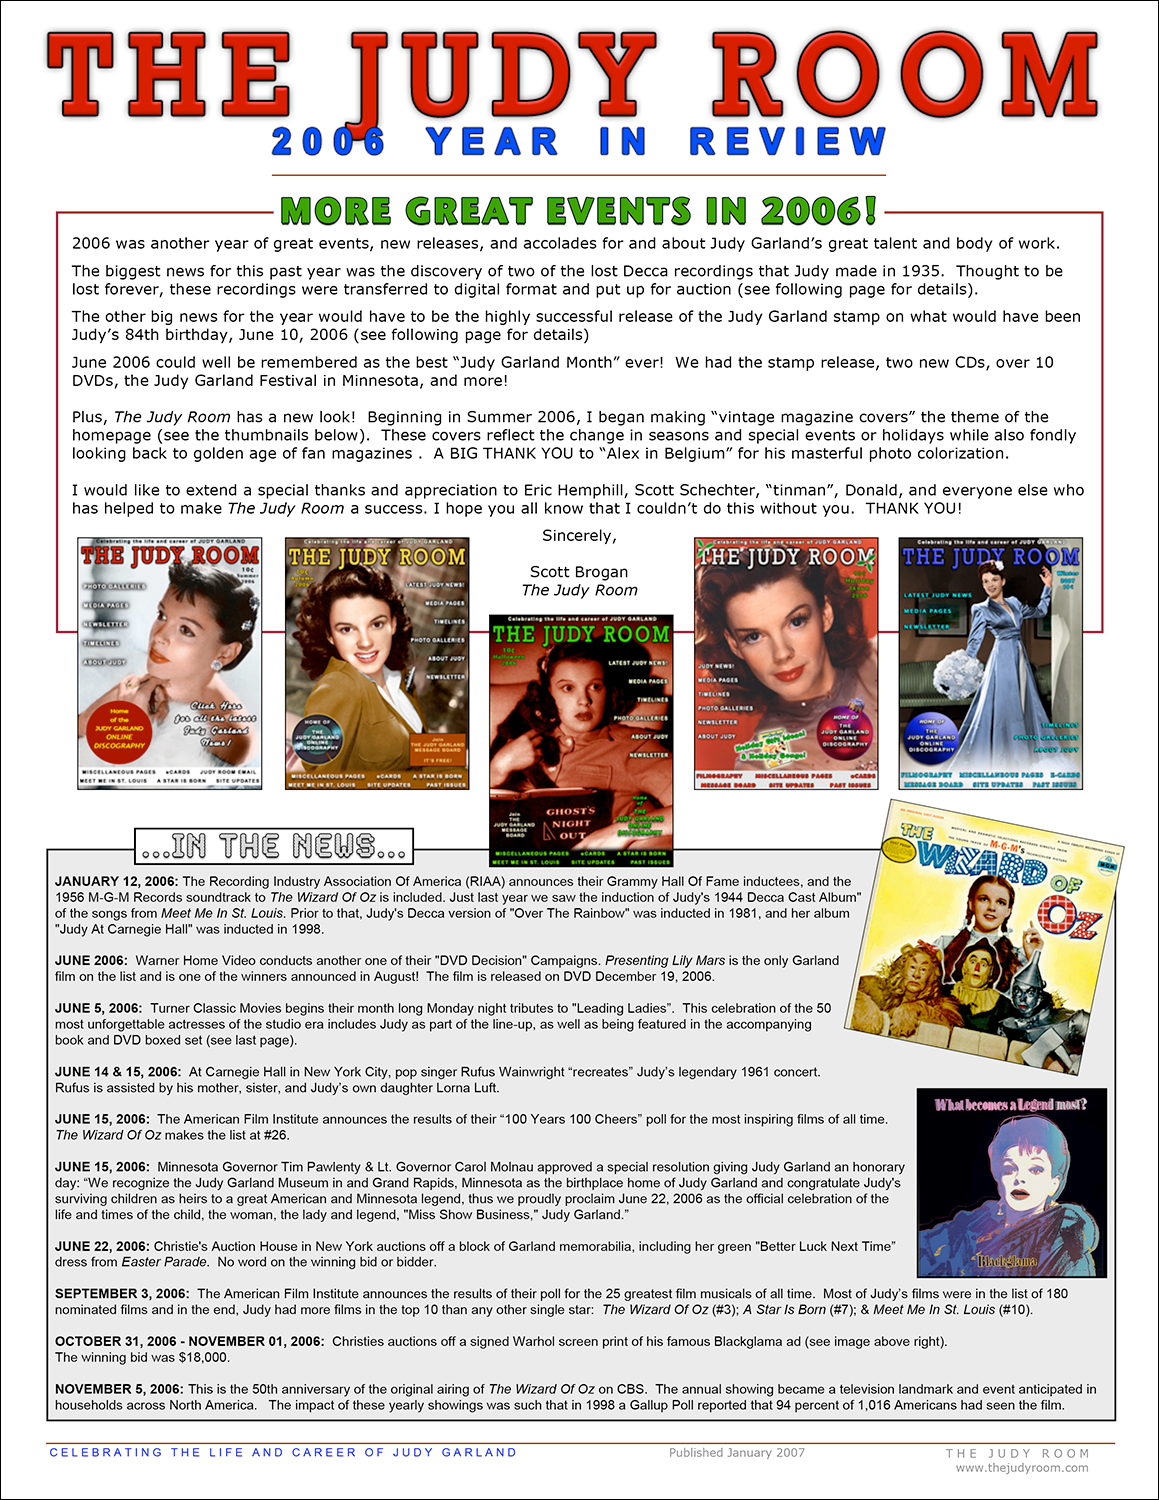 The Judy Room's 2006 Year in Review